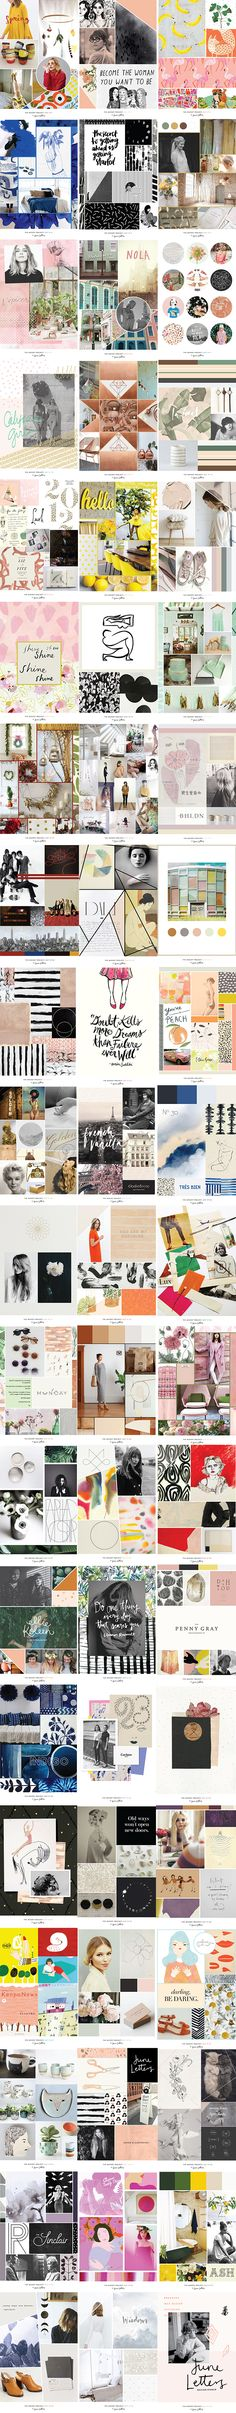 60 Mood Boards - June Letters The Moody Project  Blog — June Letters Design